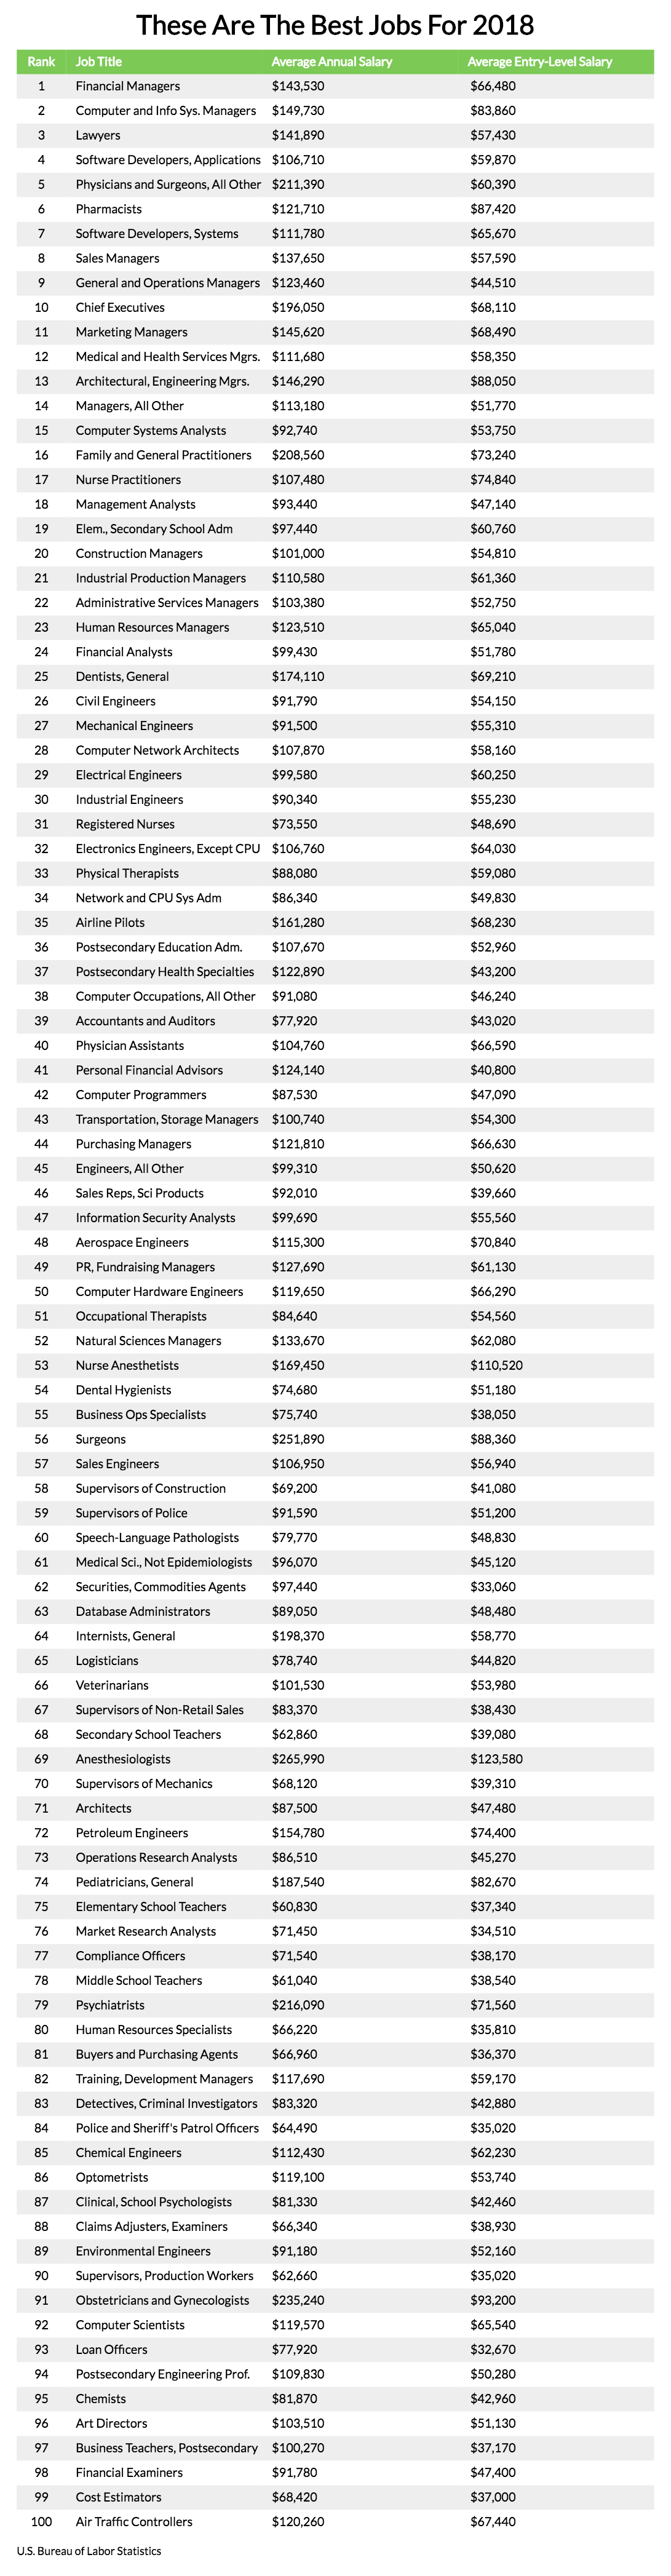 for now though here are the top 100 jobs of 2018